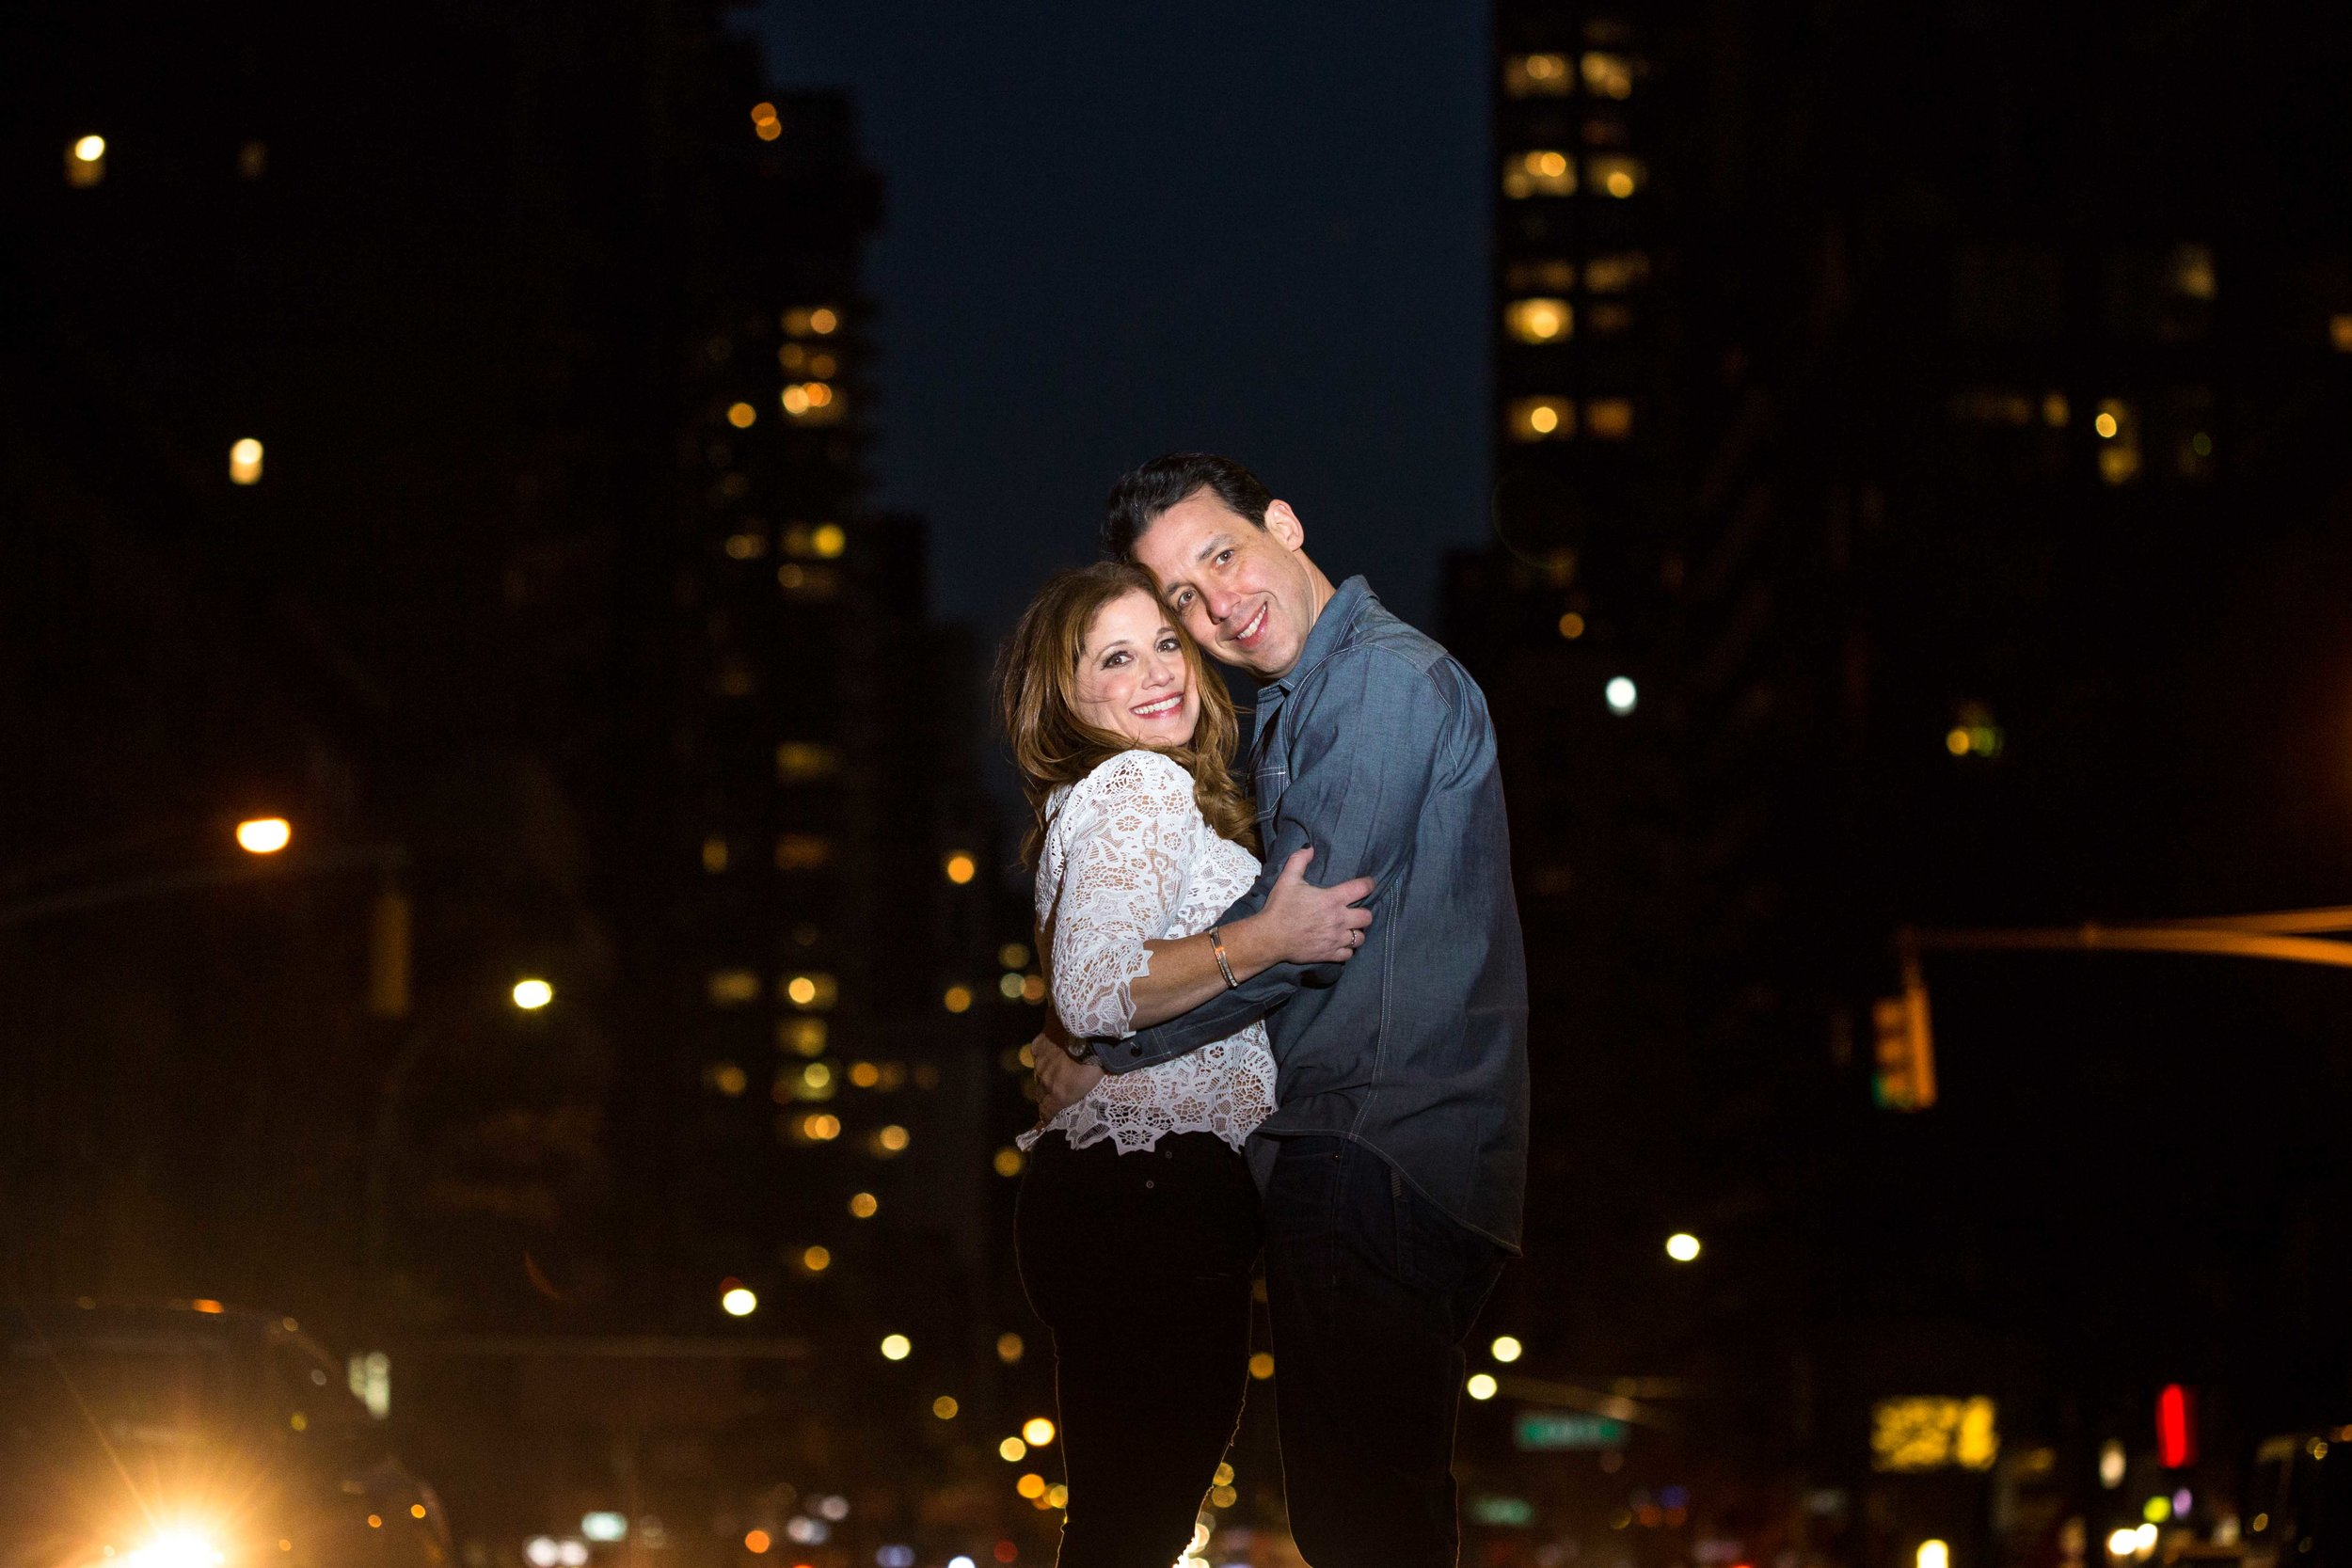 NYC Carl Schurz Park Engagement Photo Shoot Session 20.jpg